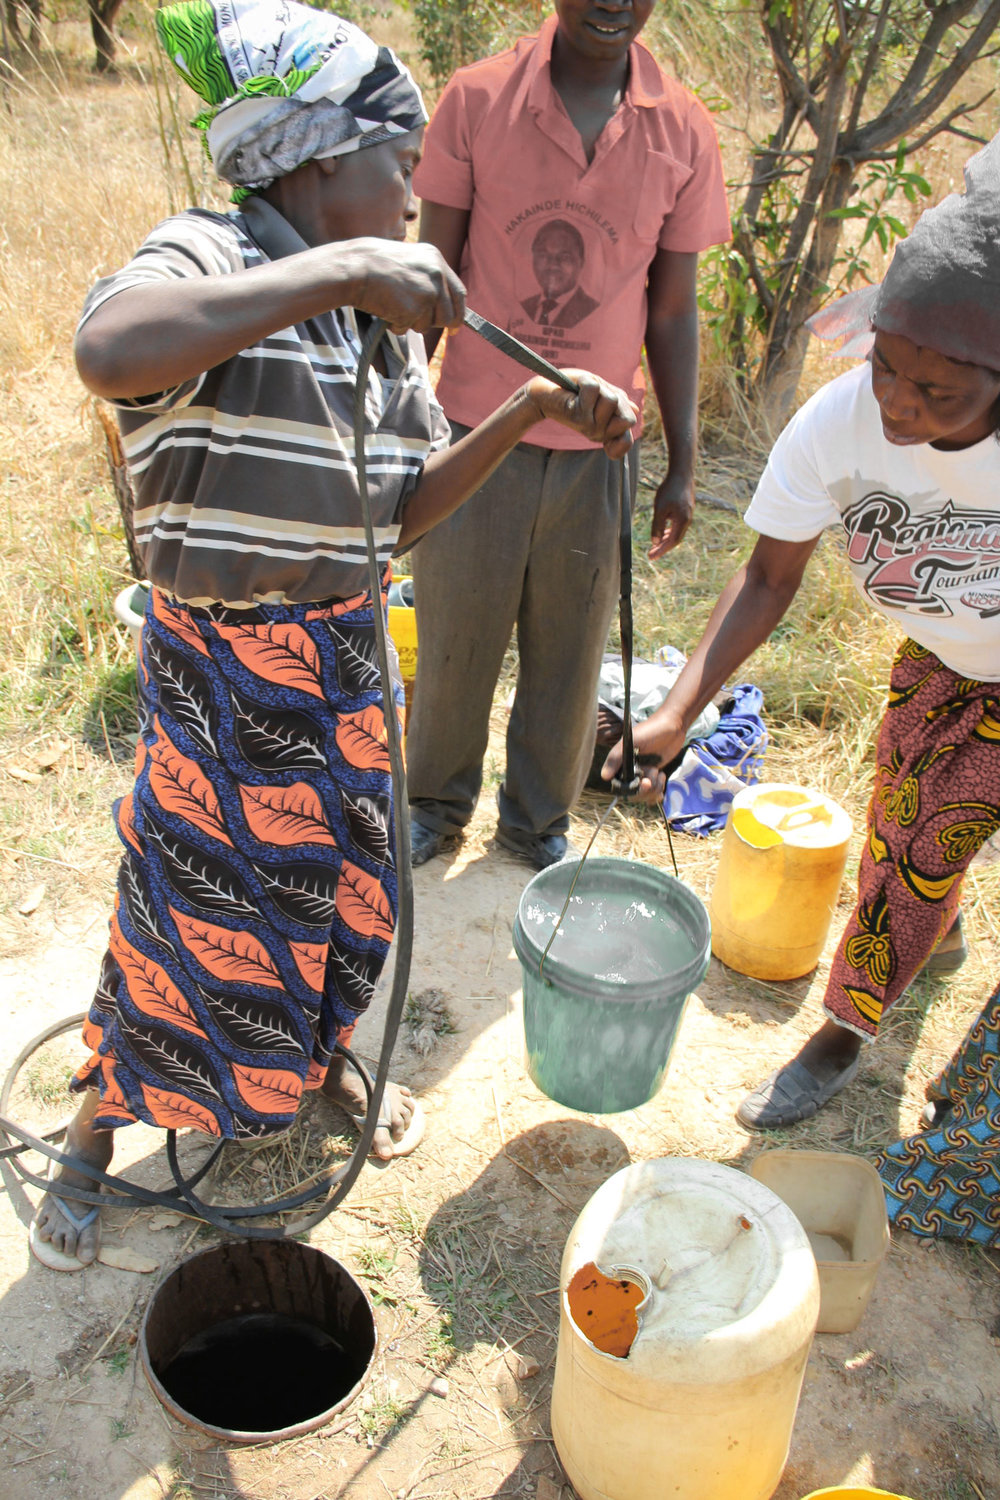 In order to cook for the children and have water for cleaning, the Care Workers have to collect water from the nearby well.